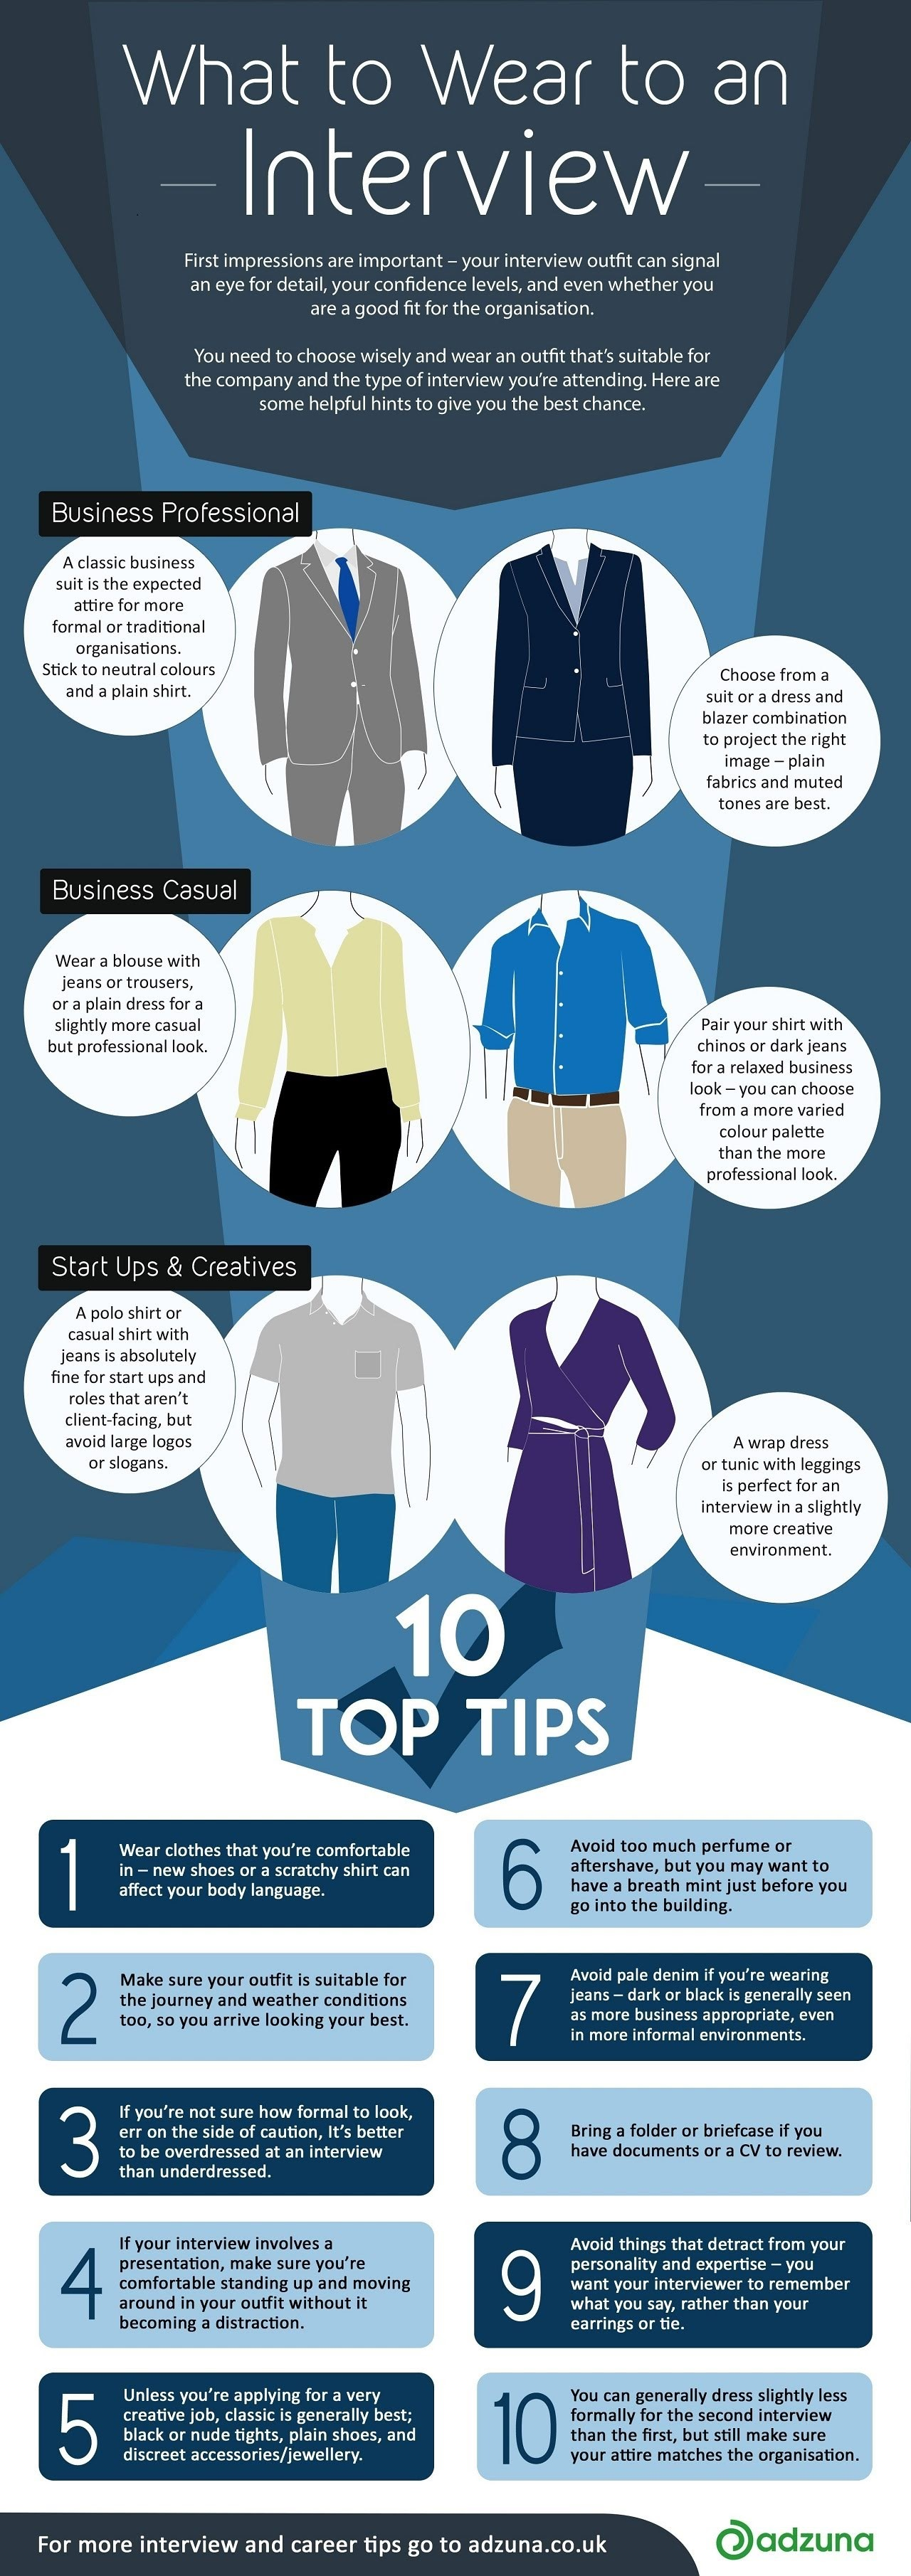 What to Wear for Different Job Interviews #infographic